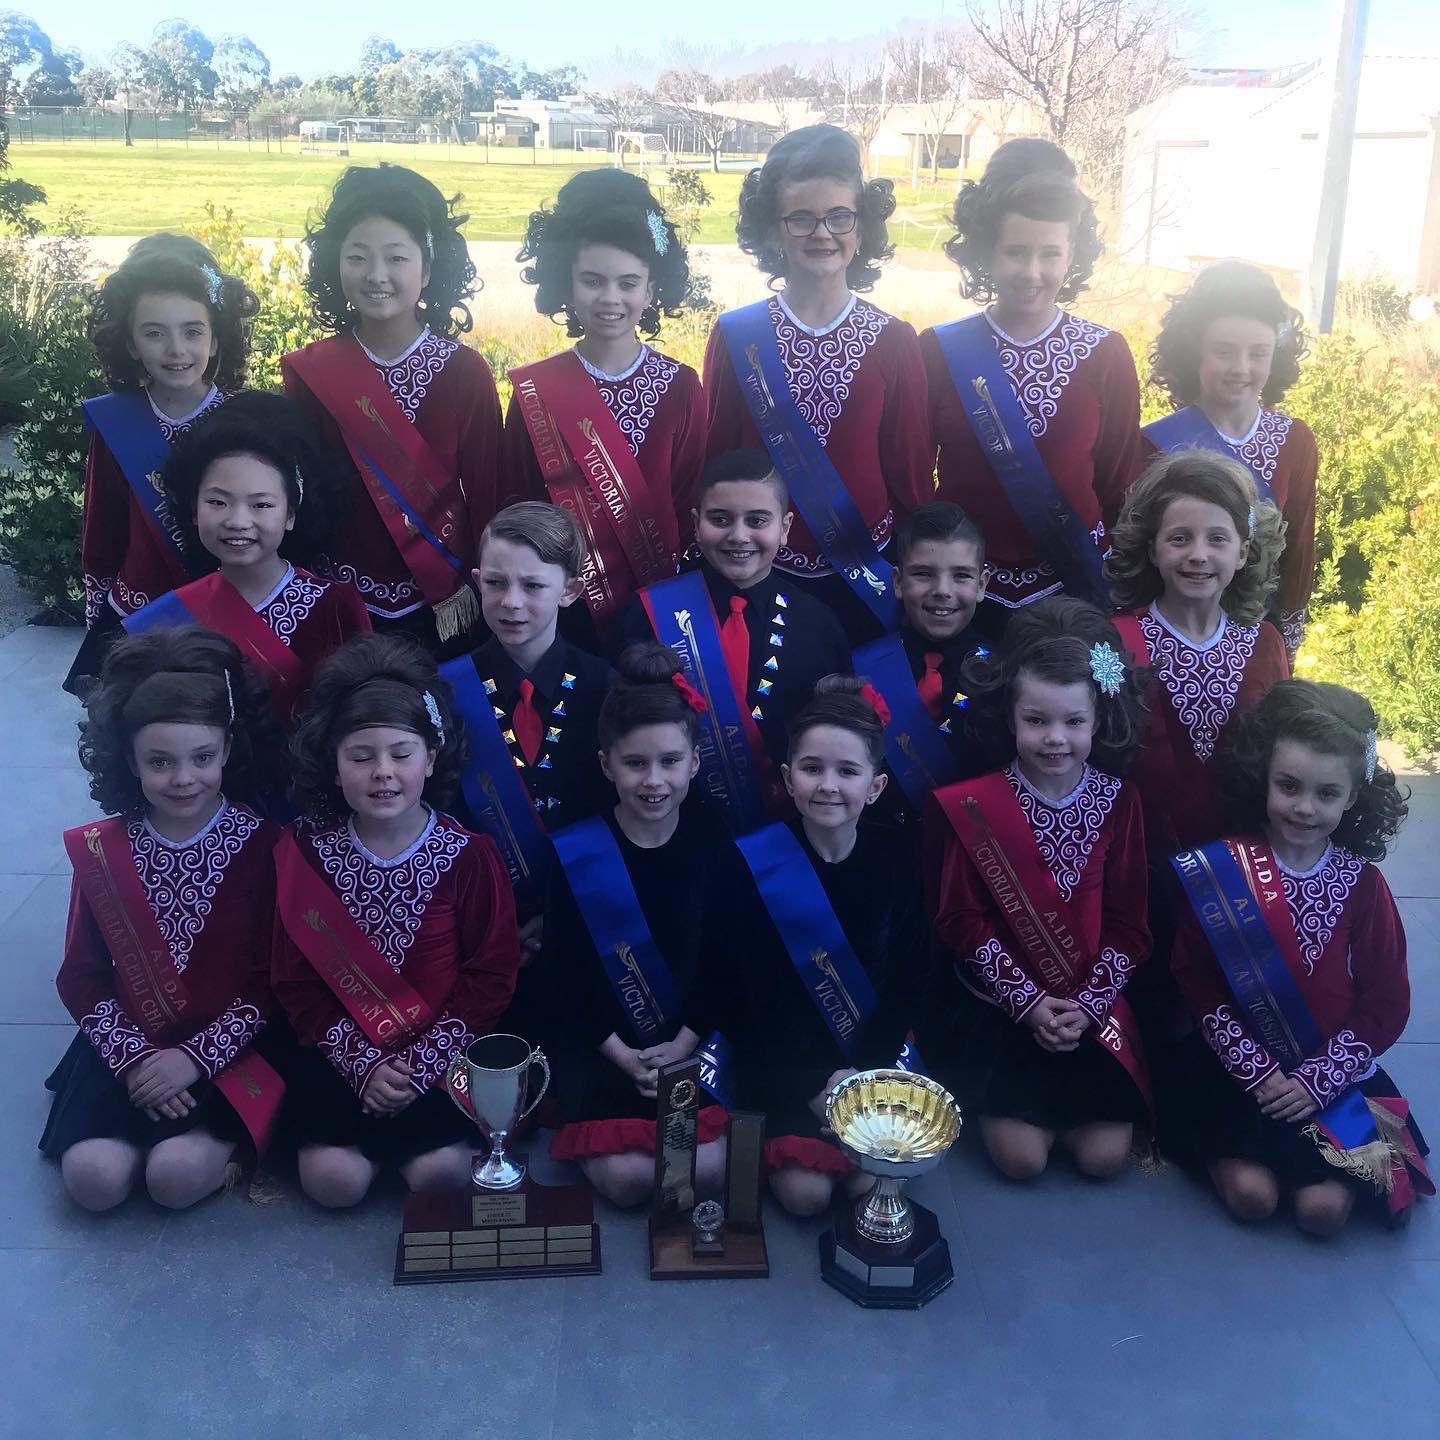 Junior Teams at the 2019 Victorian Ceili